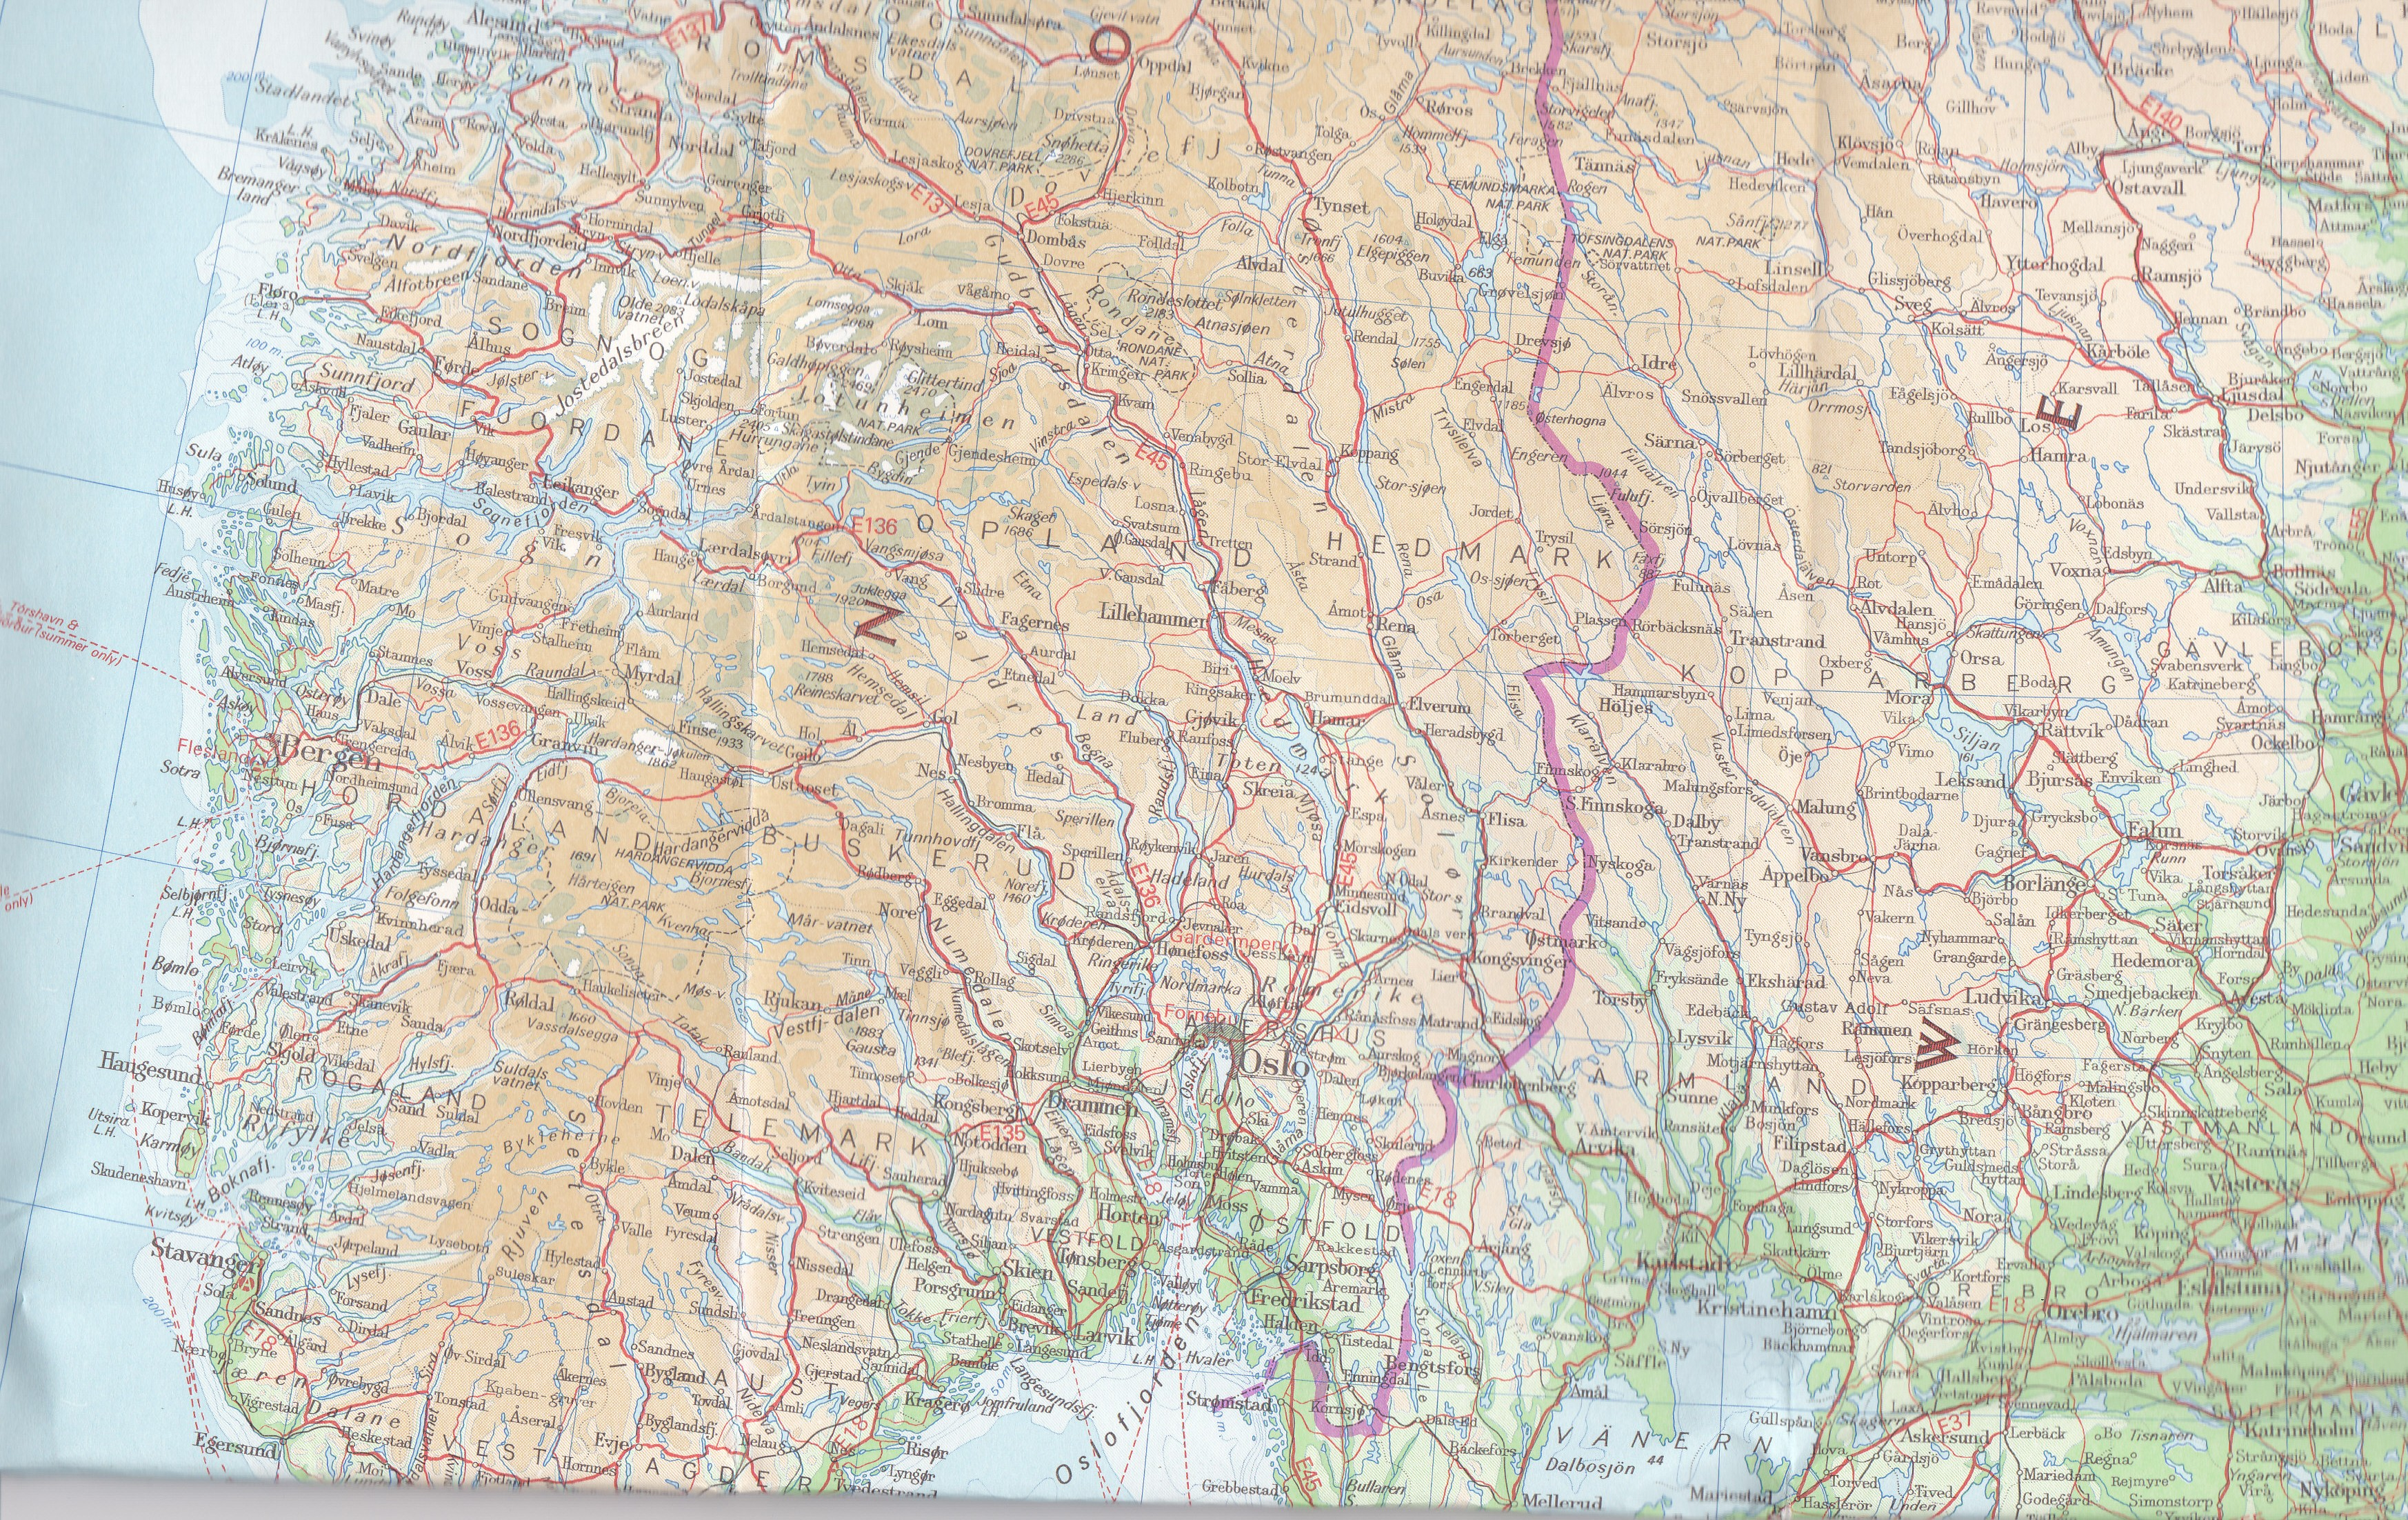 American youth hostels ayh janets thread its not easy to read the map but above are a few of the places bergen voss the hardanger fjord geilo gol oslo i cant seem to find eidfjord but im publicscrutiny Image collections